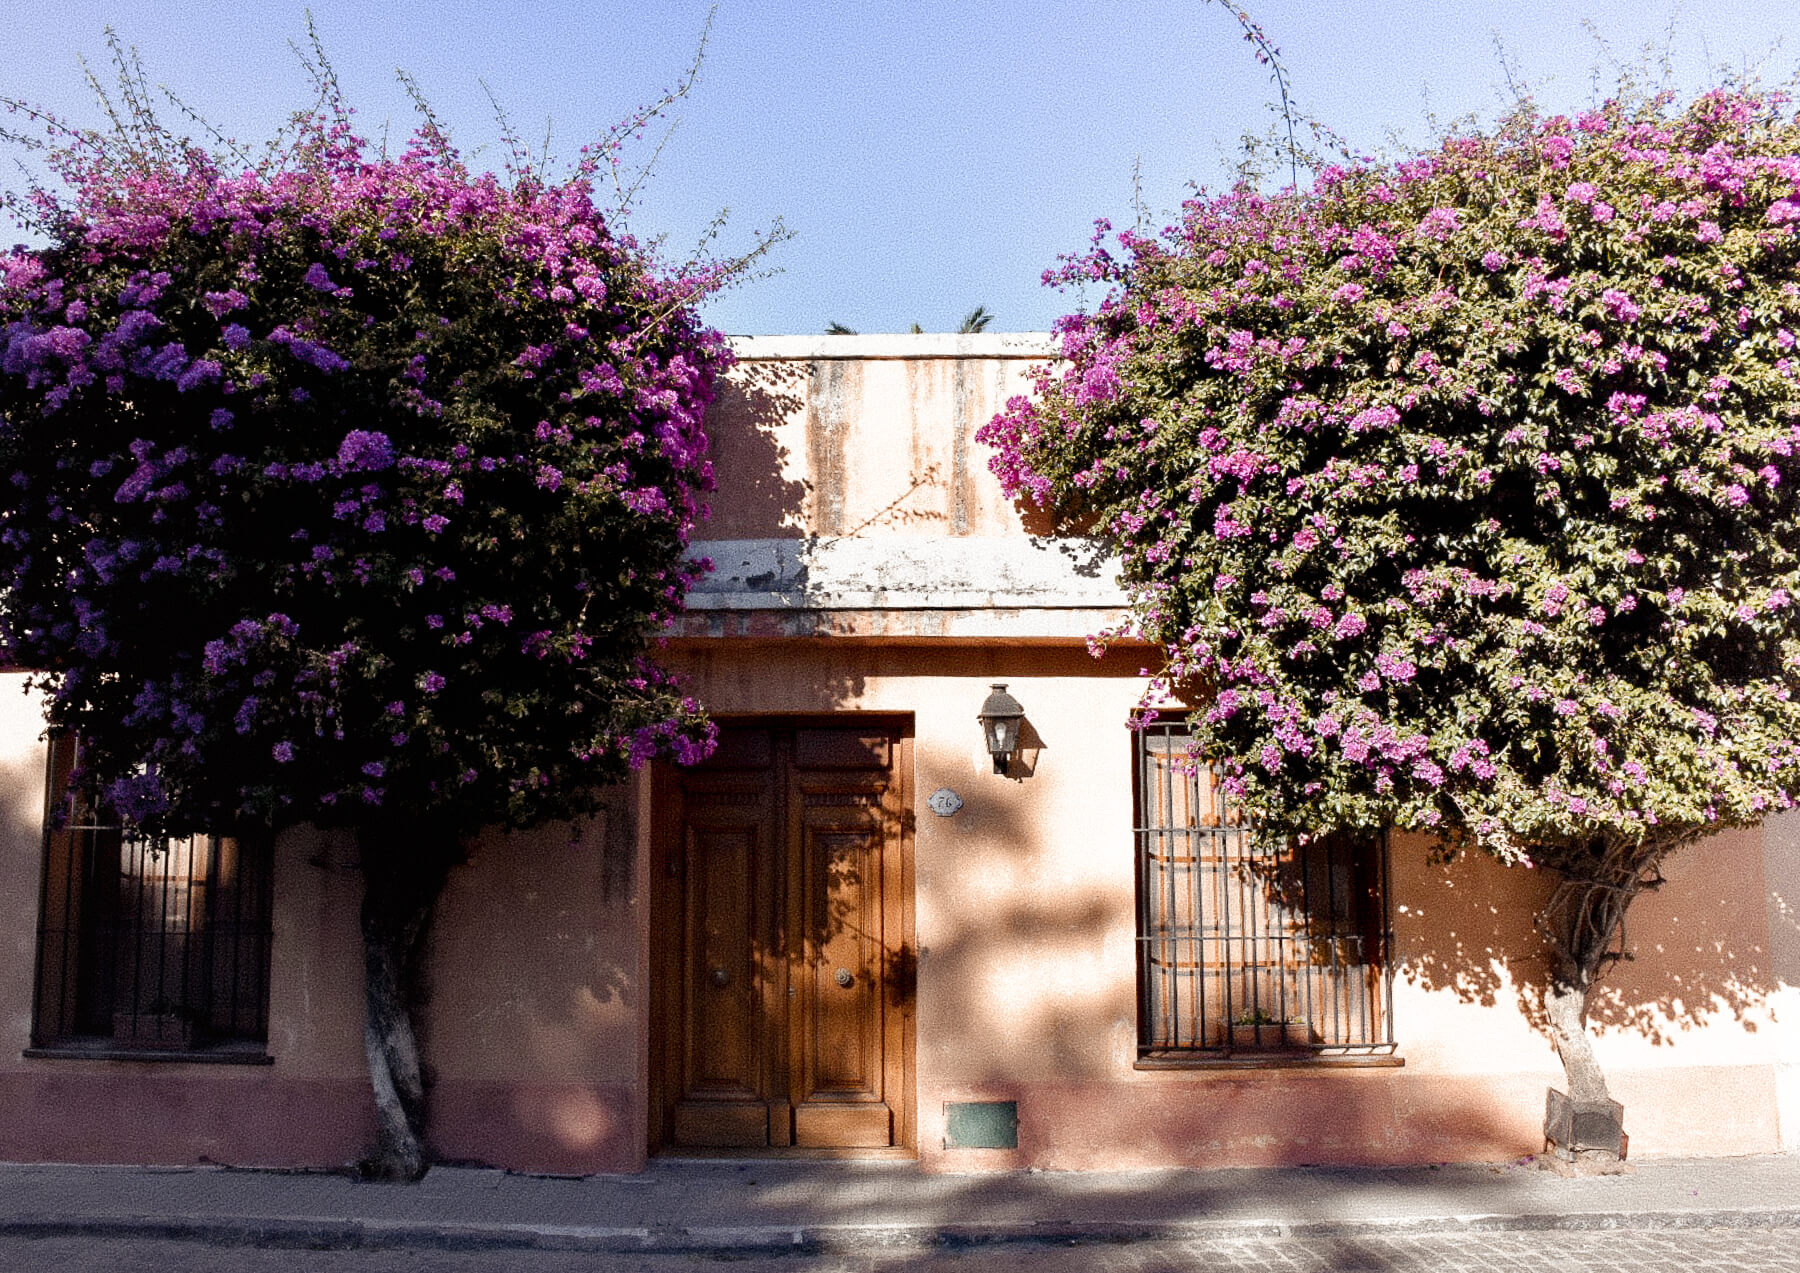 A peachy coloured building with 2 green trees covered in pink flowers on either side of the door